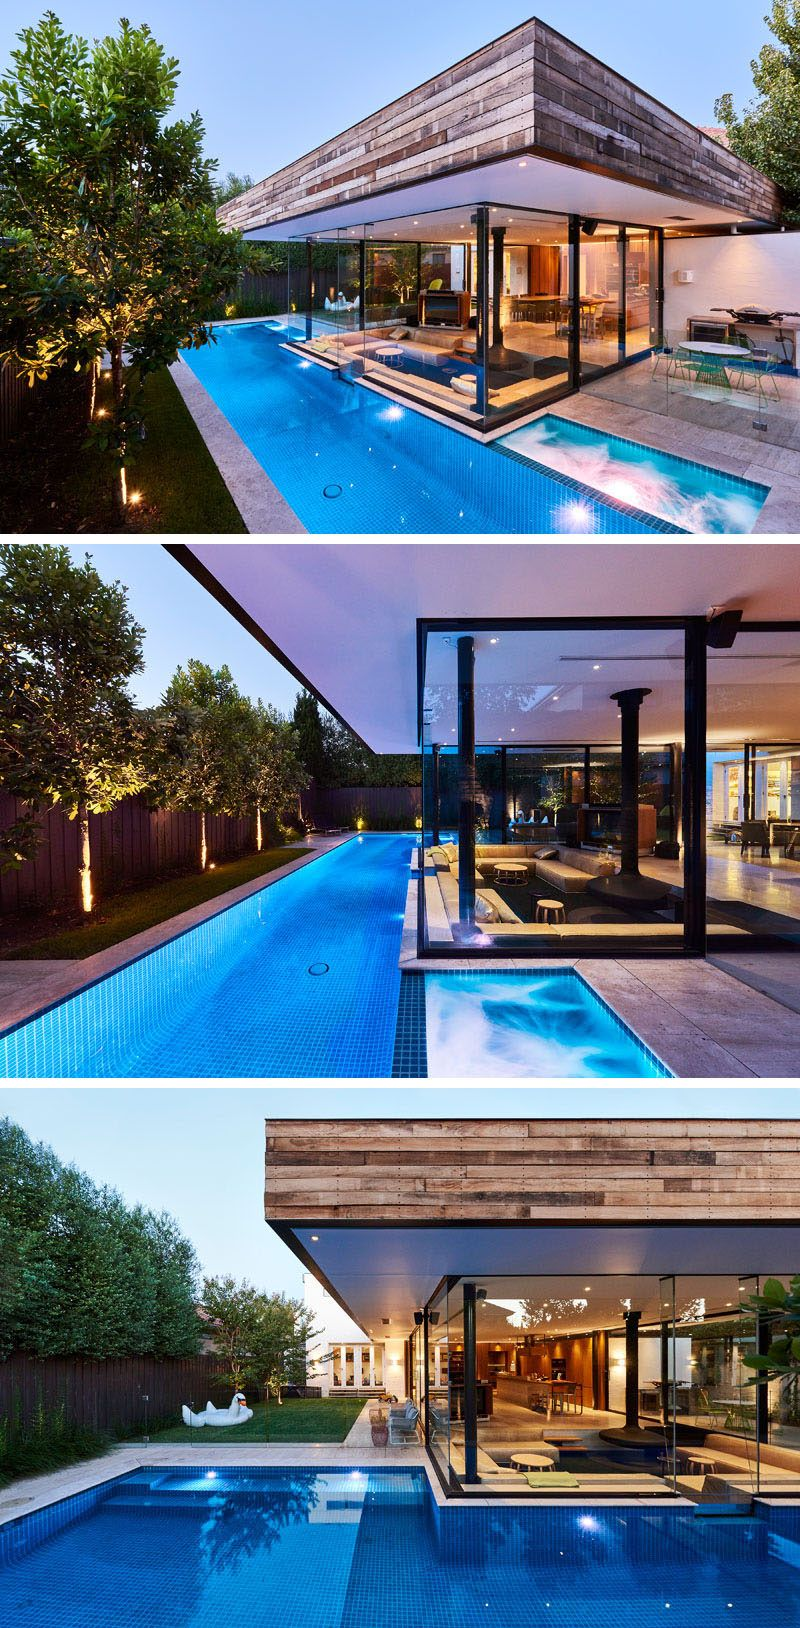 This House Has A Sunken Living Room So People Can Be At The Same Level As Those In The Swimming Pool Next To It Modern Pools Pool Houses Swimming Pool Designs